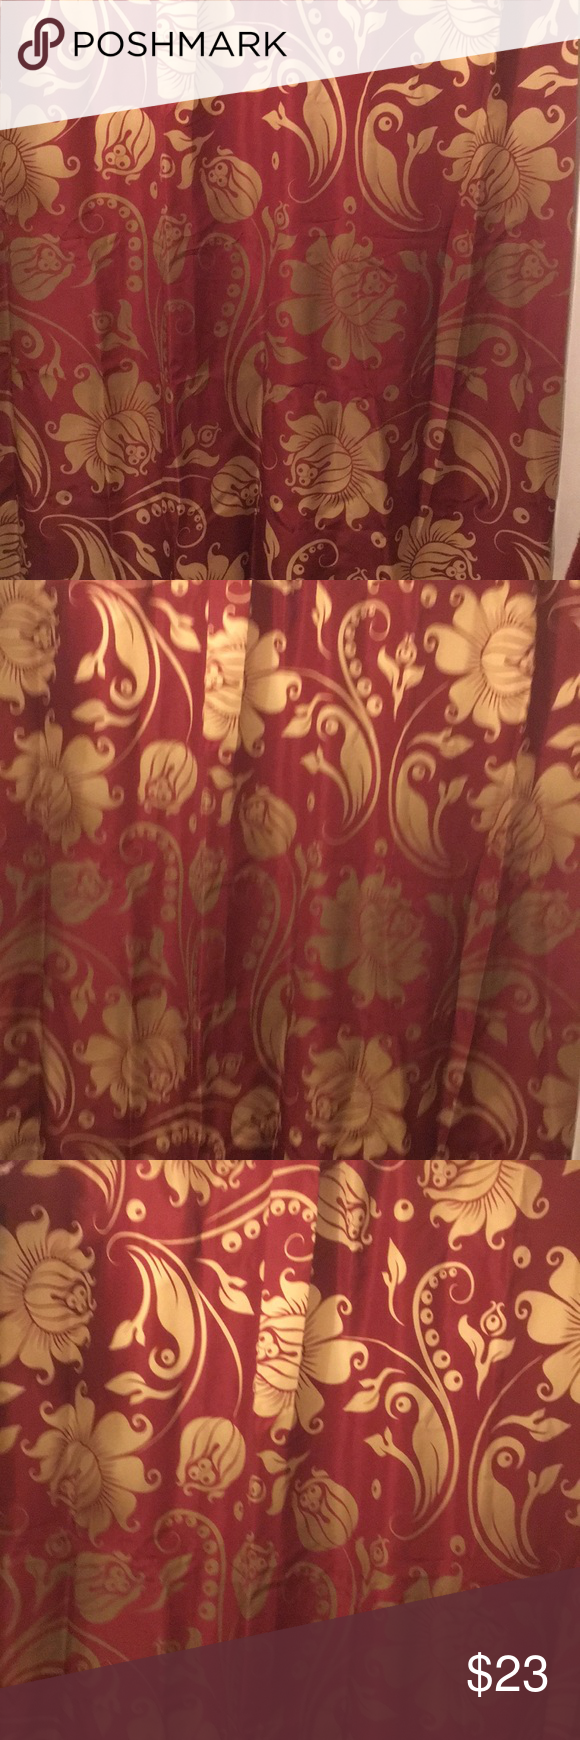 Burgundy And Gold Shower Curtain Brand New Burgundy And Gold